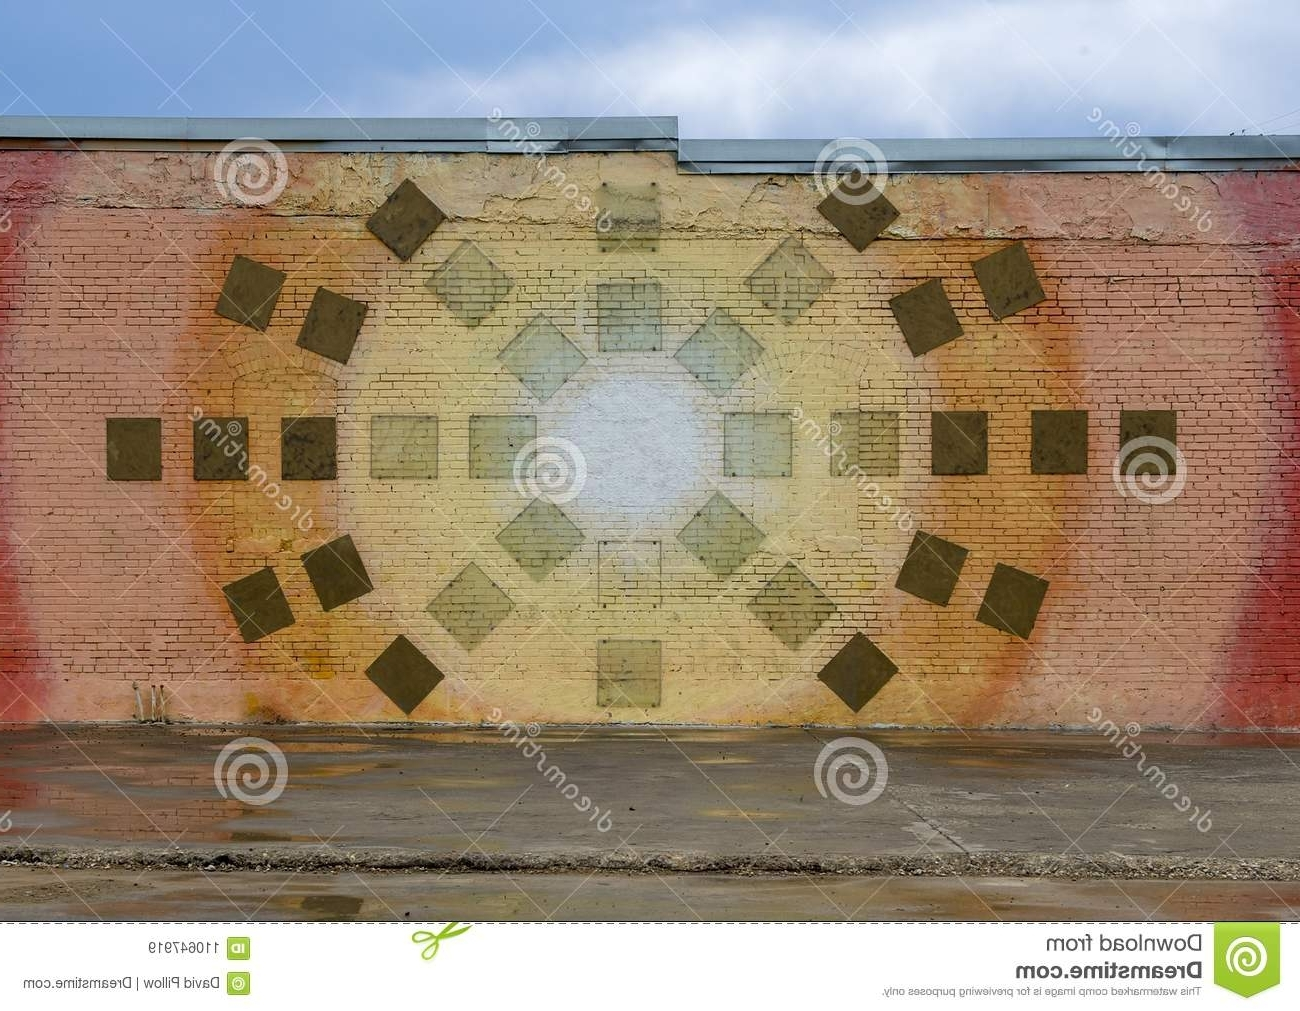 2017 Texas Wall Art Within Wall Art Mural In Deep Ellum, Dallas, Texas Editorial Stock Image (View 18 of 20)